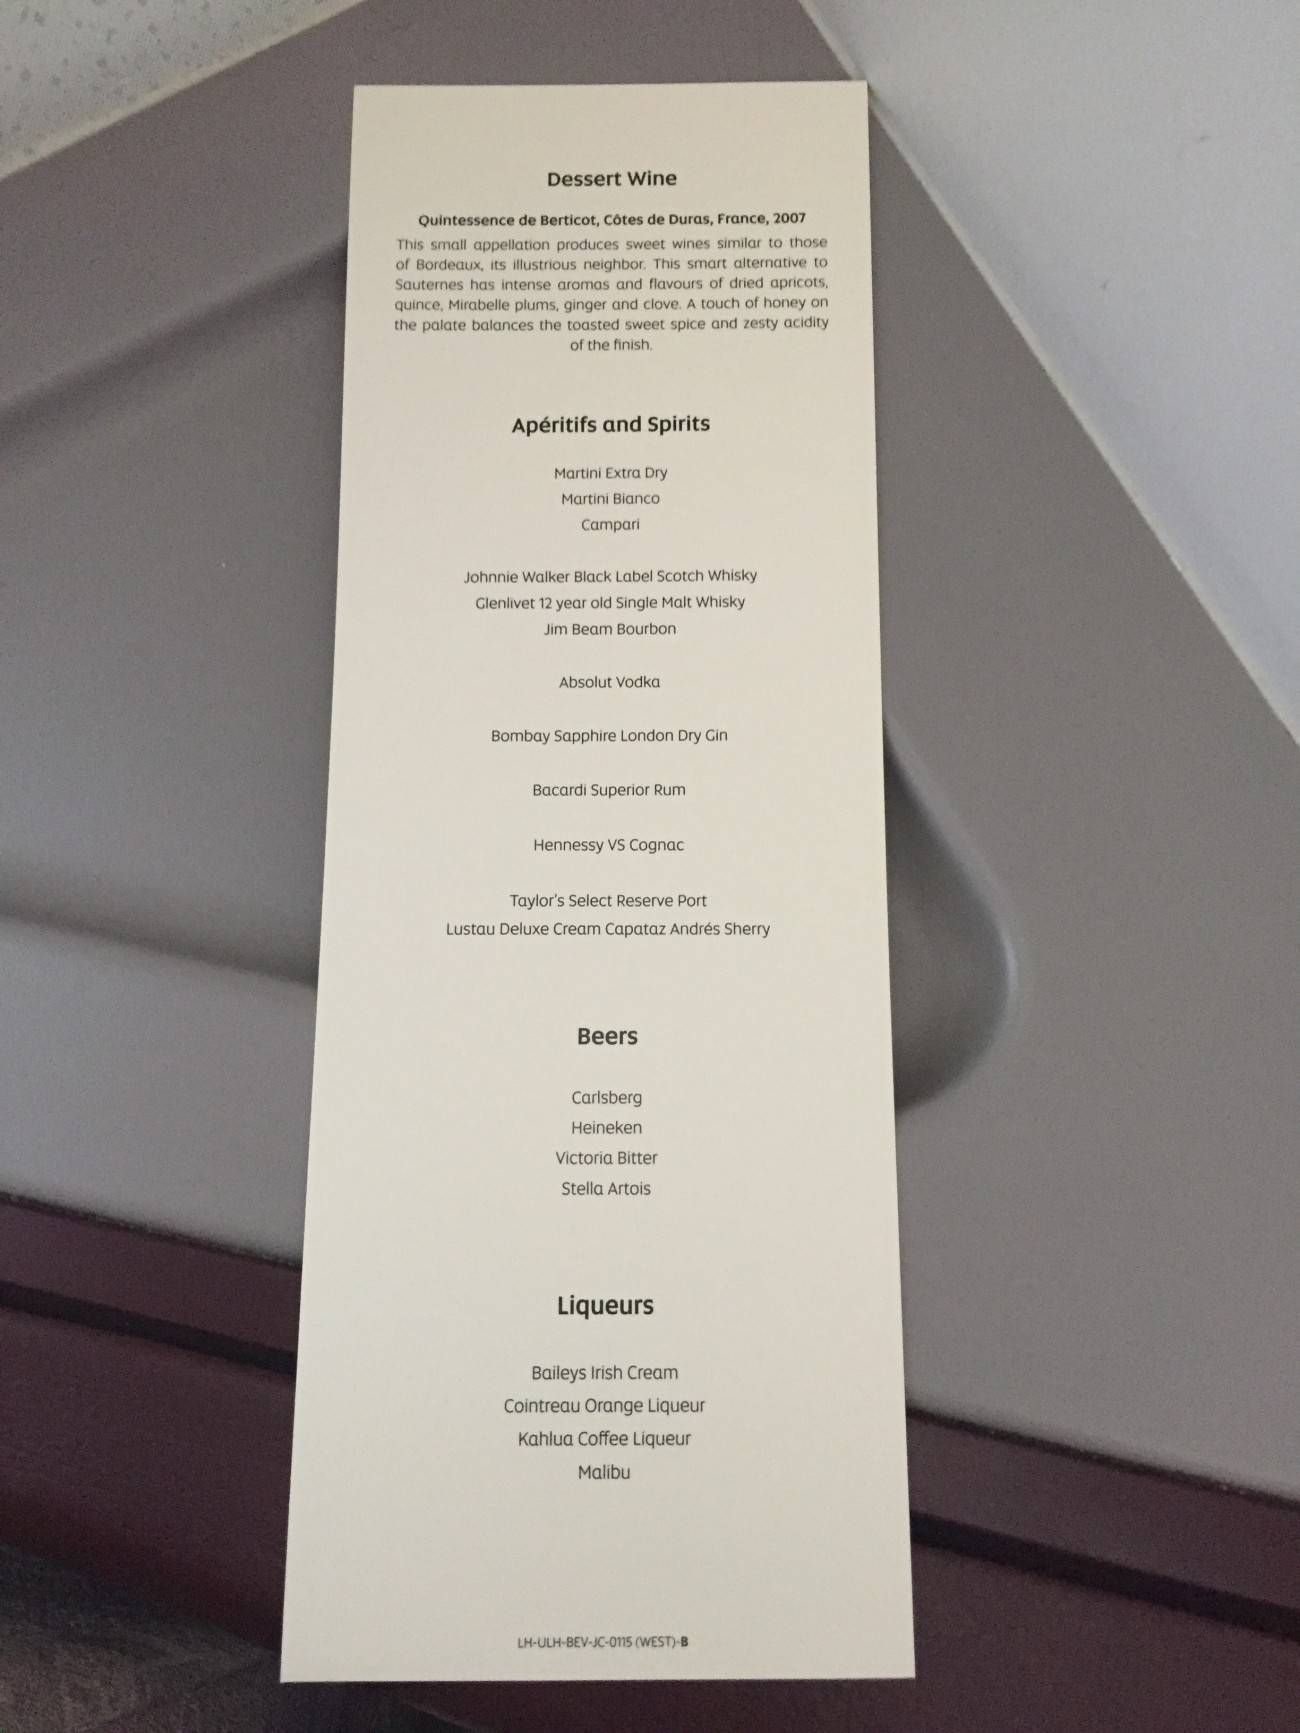 Jet Airways A330 Business Class Etihad Passageirodeprimeira -025